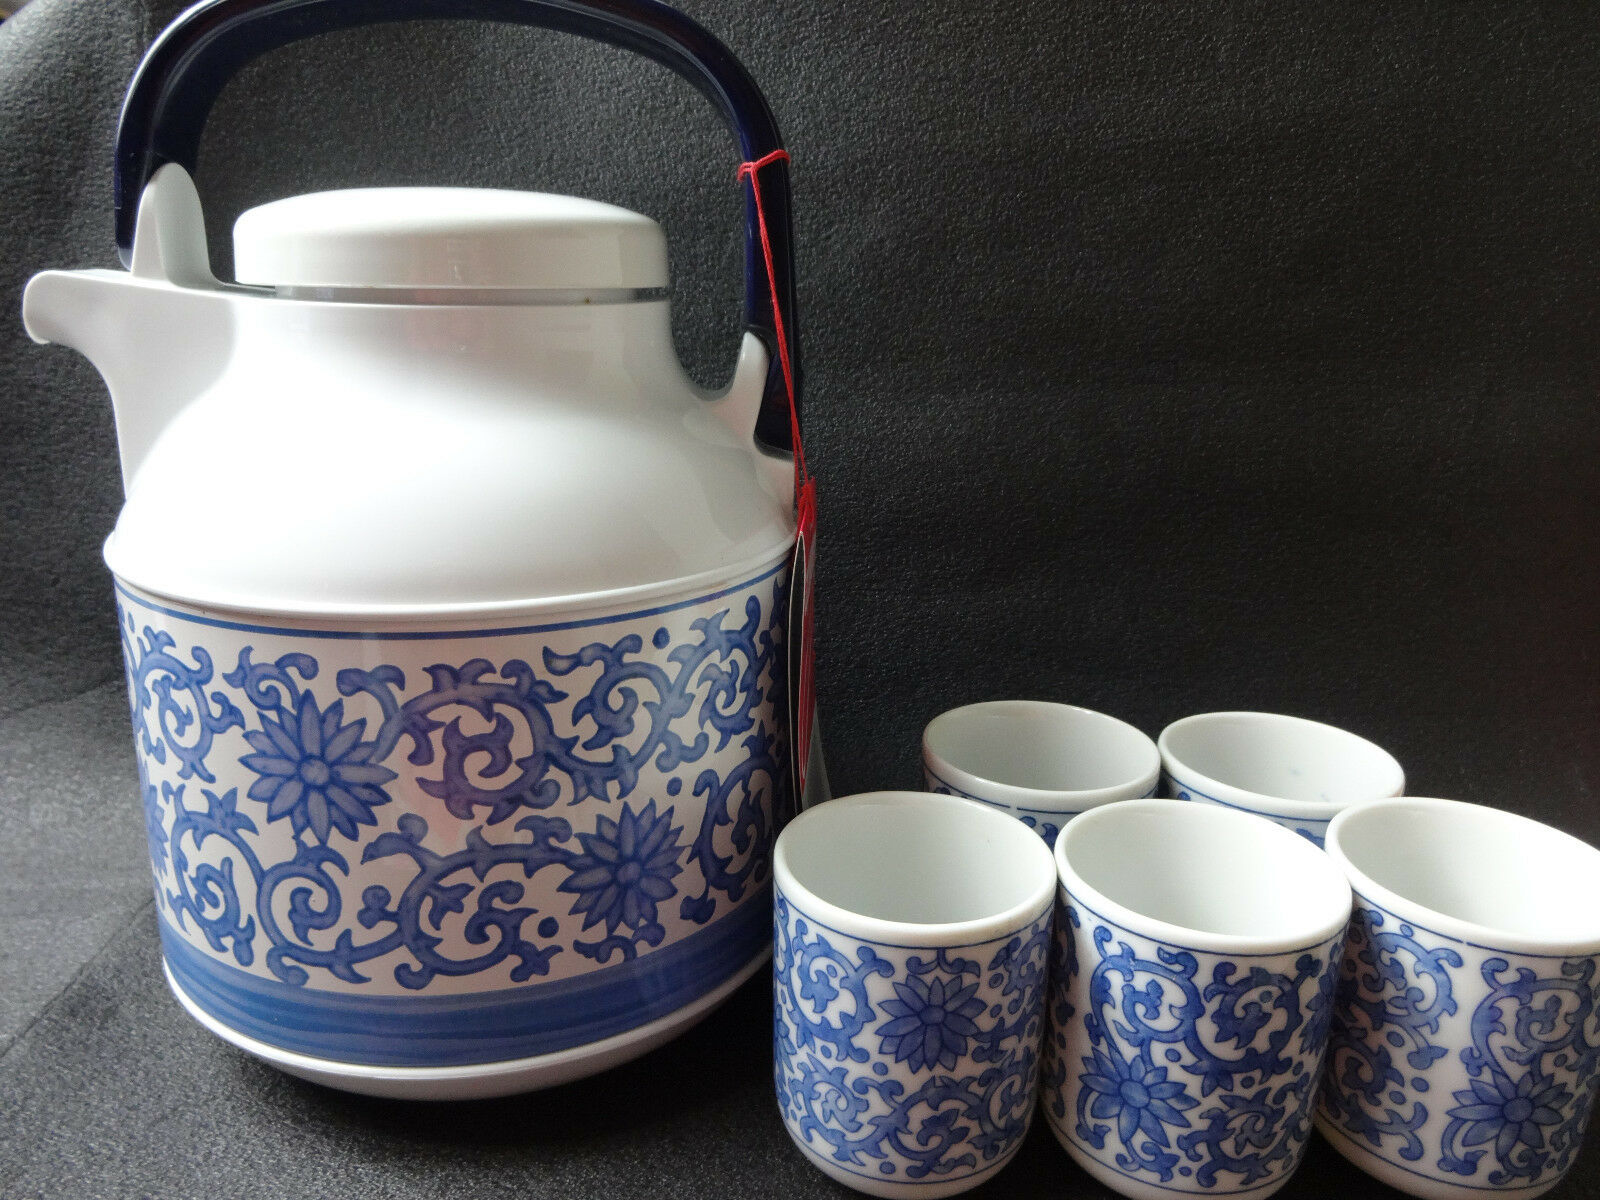 ZOJIRUSHI Thermos Tabletop Tea Pot & Worcester Cup Set style japonais